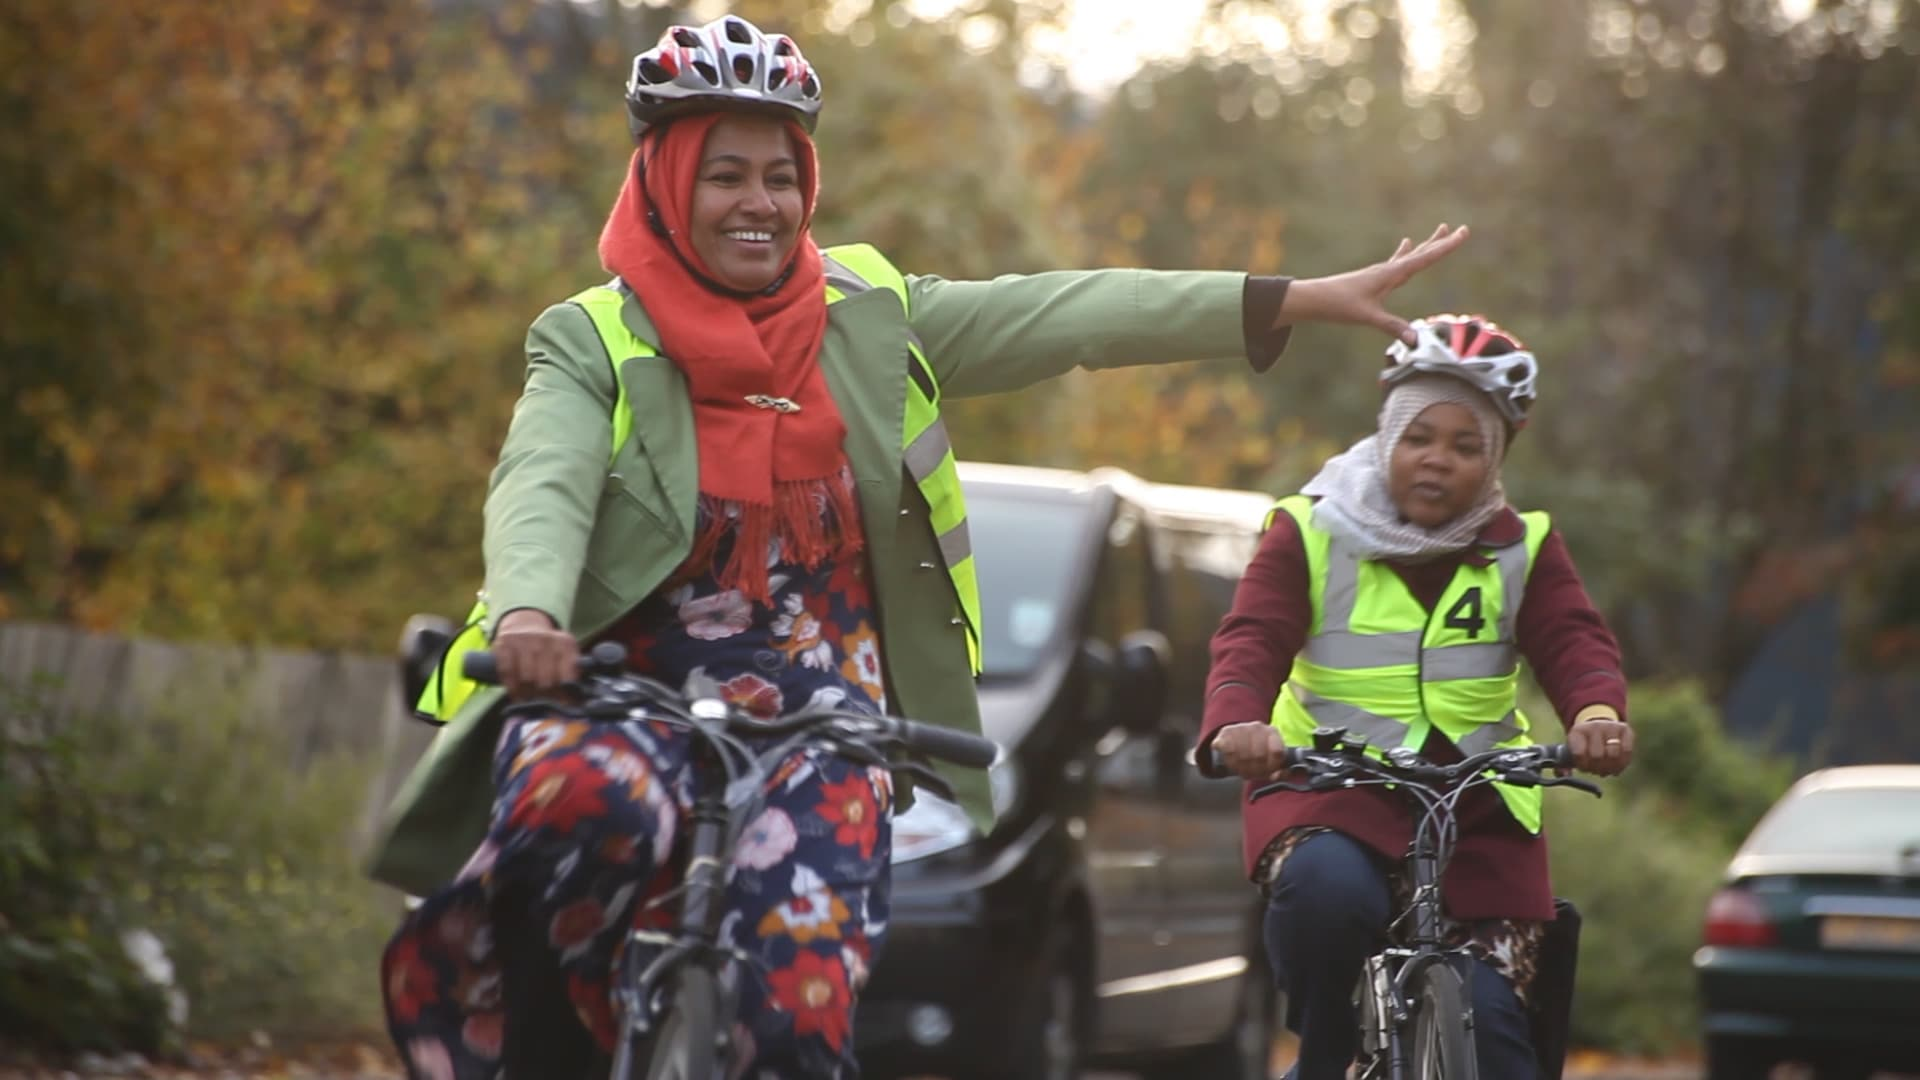 Two women cycling on a road. One woman is smiling and signalling that she's turning to the left by stretching her arm out to her left.